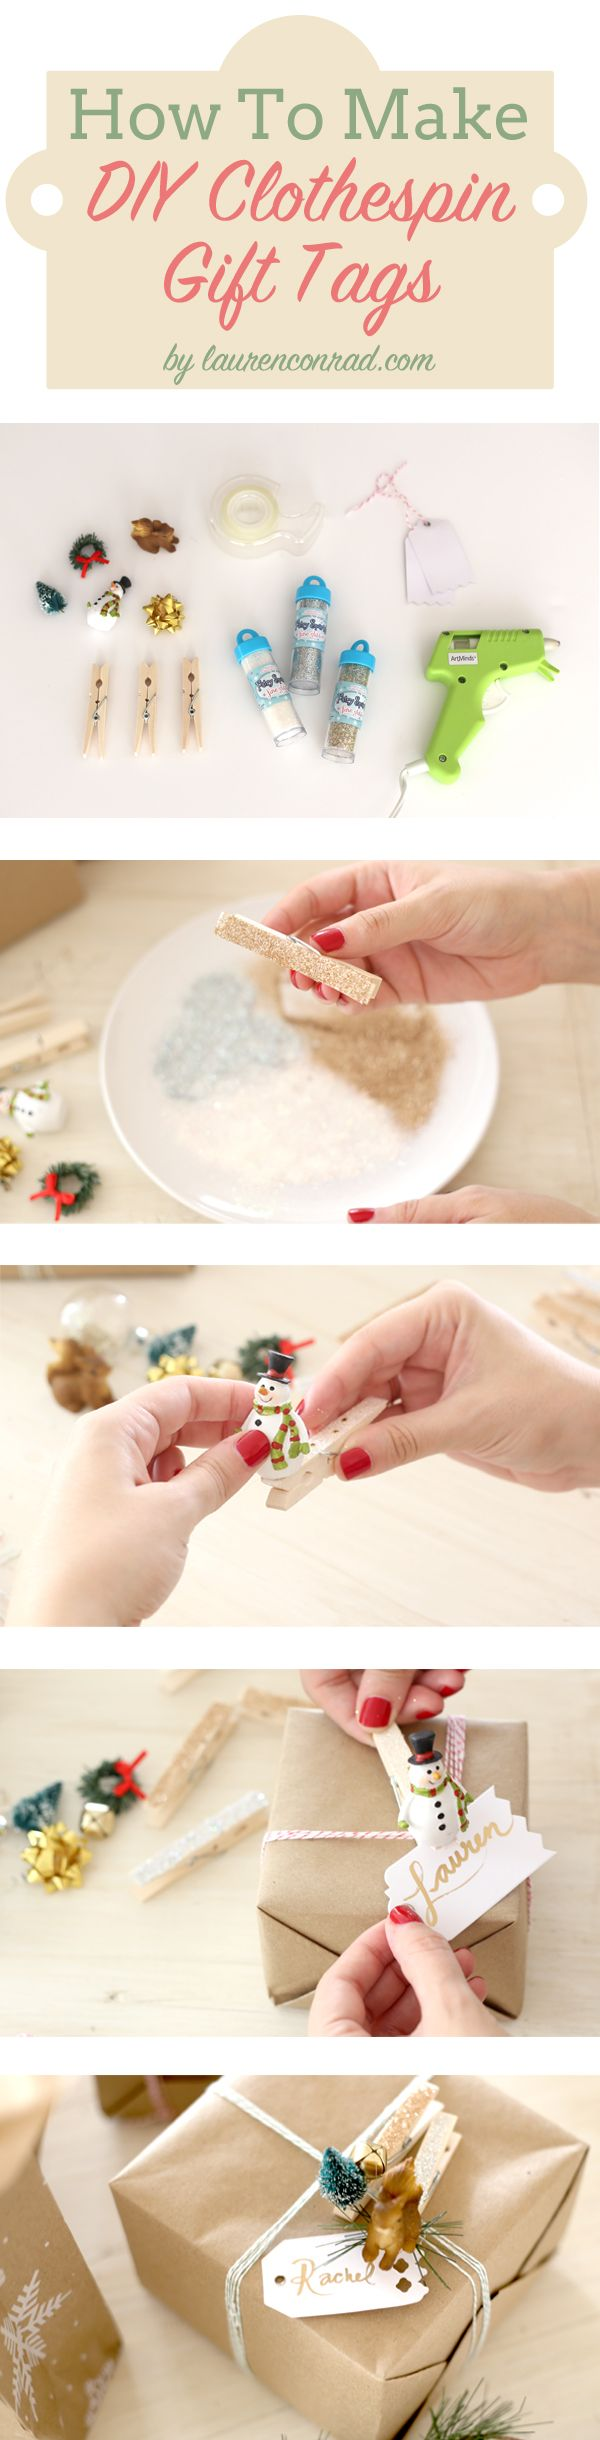 How to Make a DIY Clothespin Holiday Gift Tag {love this!}